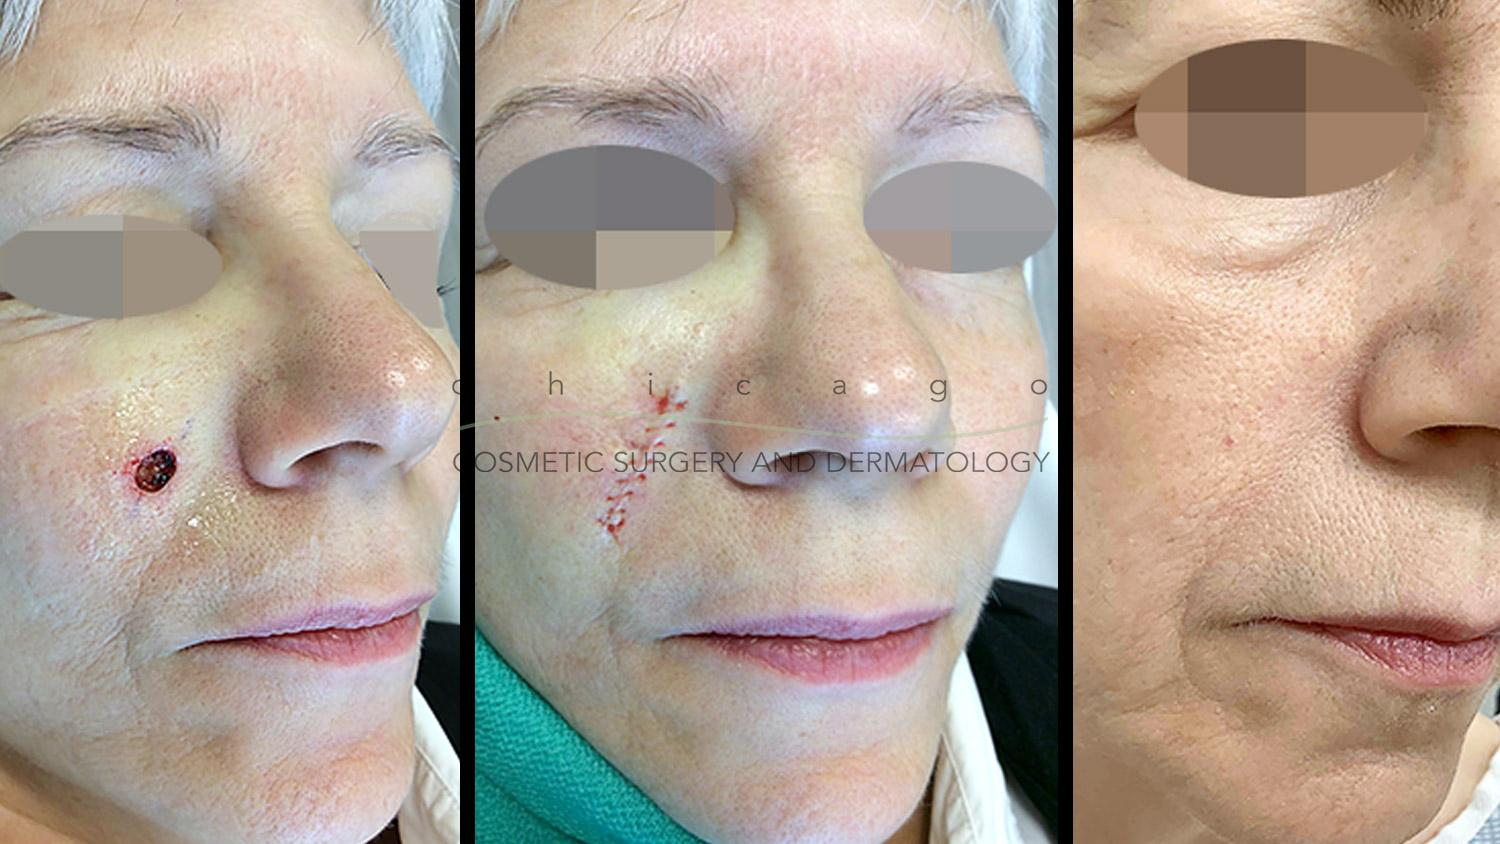 Mohs surgery to remove skin cancer